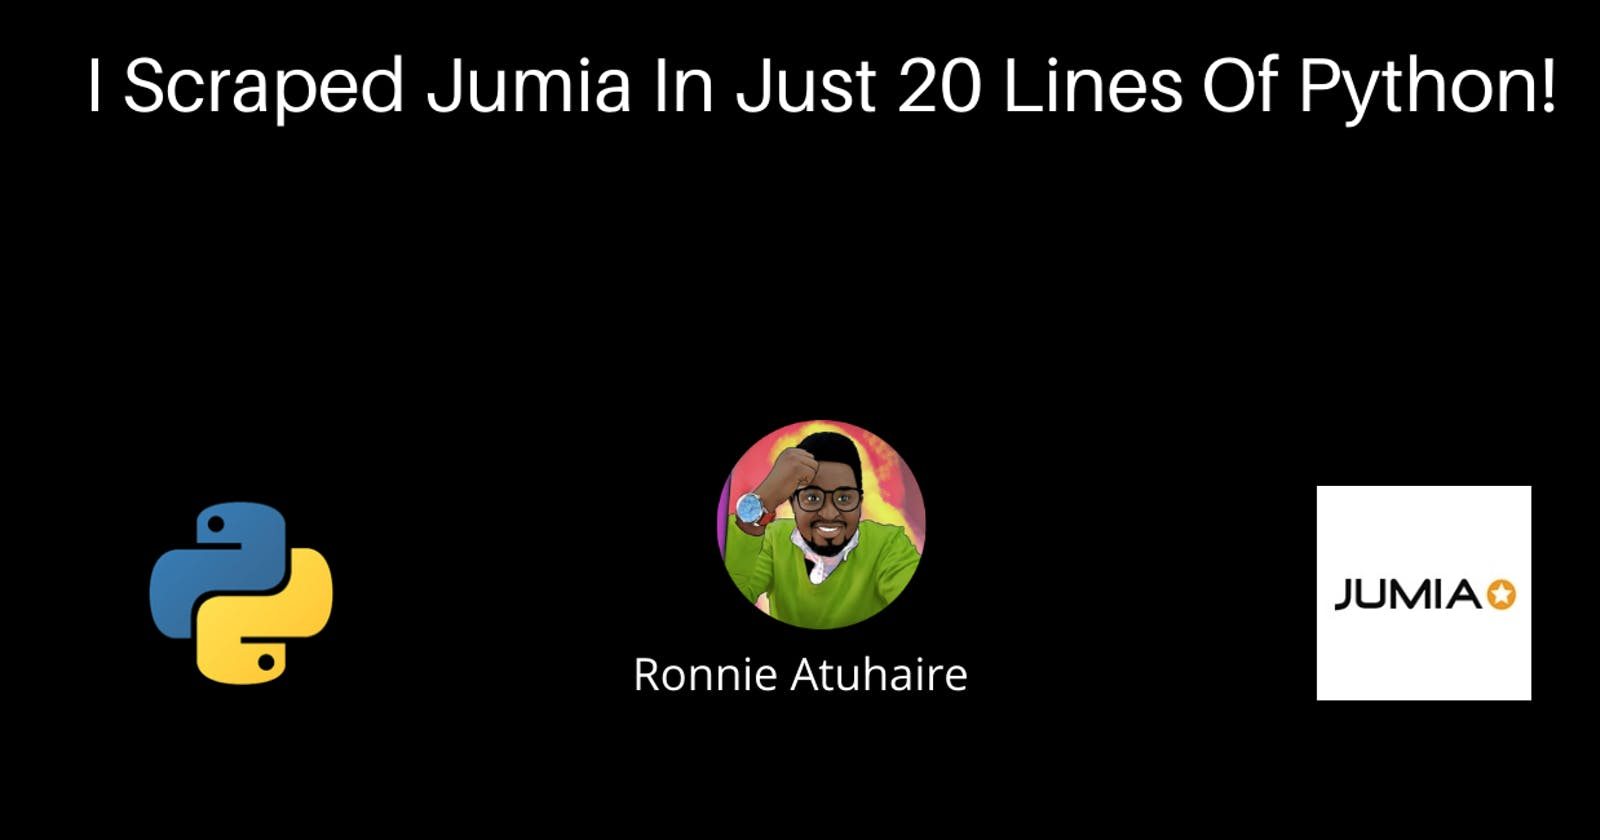 I Scraped Jumia In Just 20 Lines Of Python!